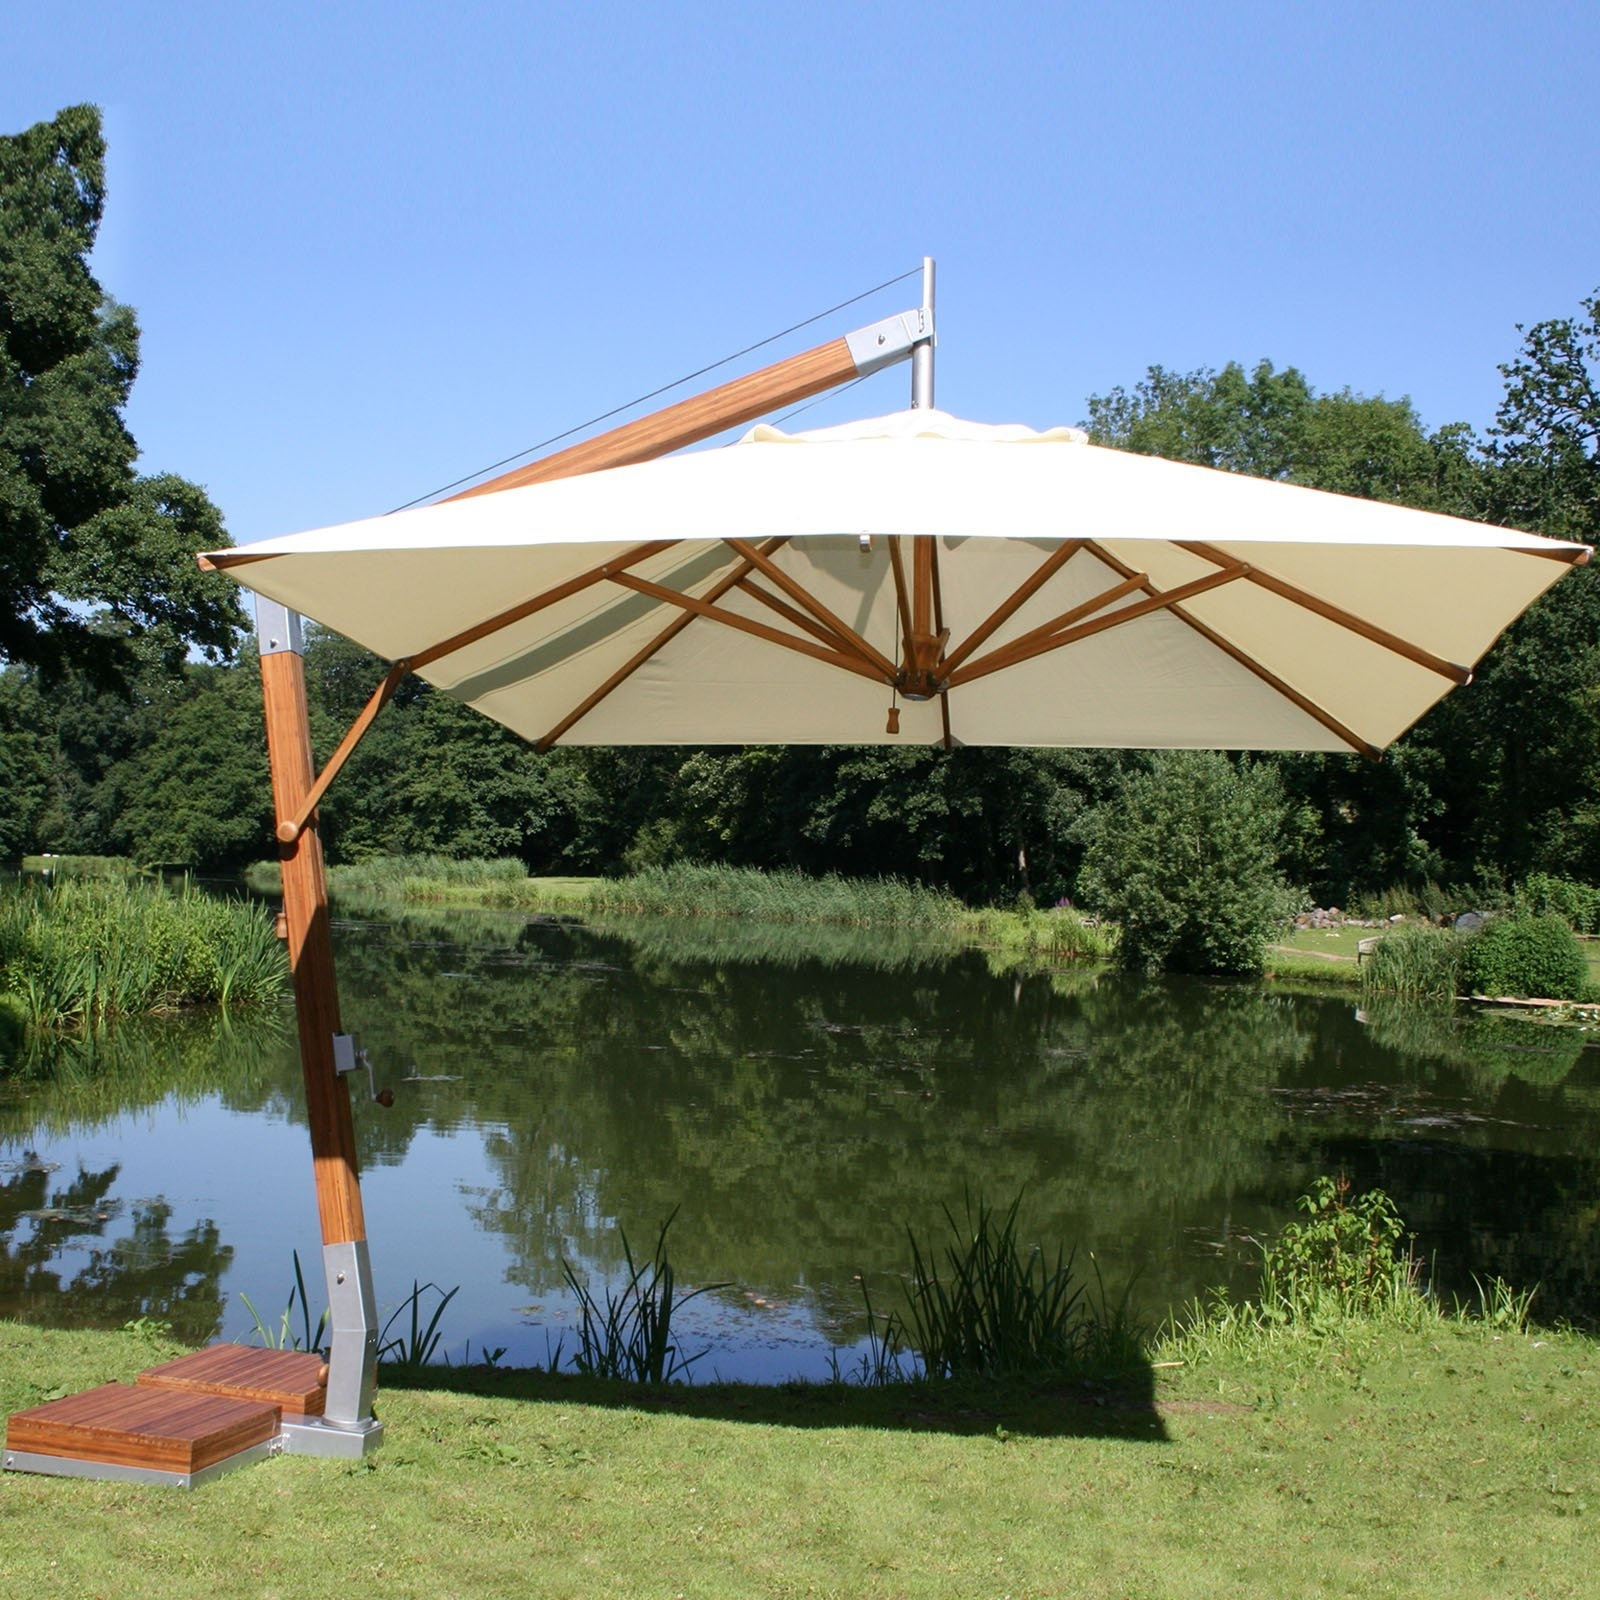 Offset Patio Umbrellas With Base In Most Recent Furniture: White Offset Patio Umbrellas With Bamboo At Hayneedle (View 11 of 20)